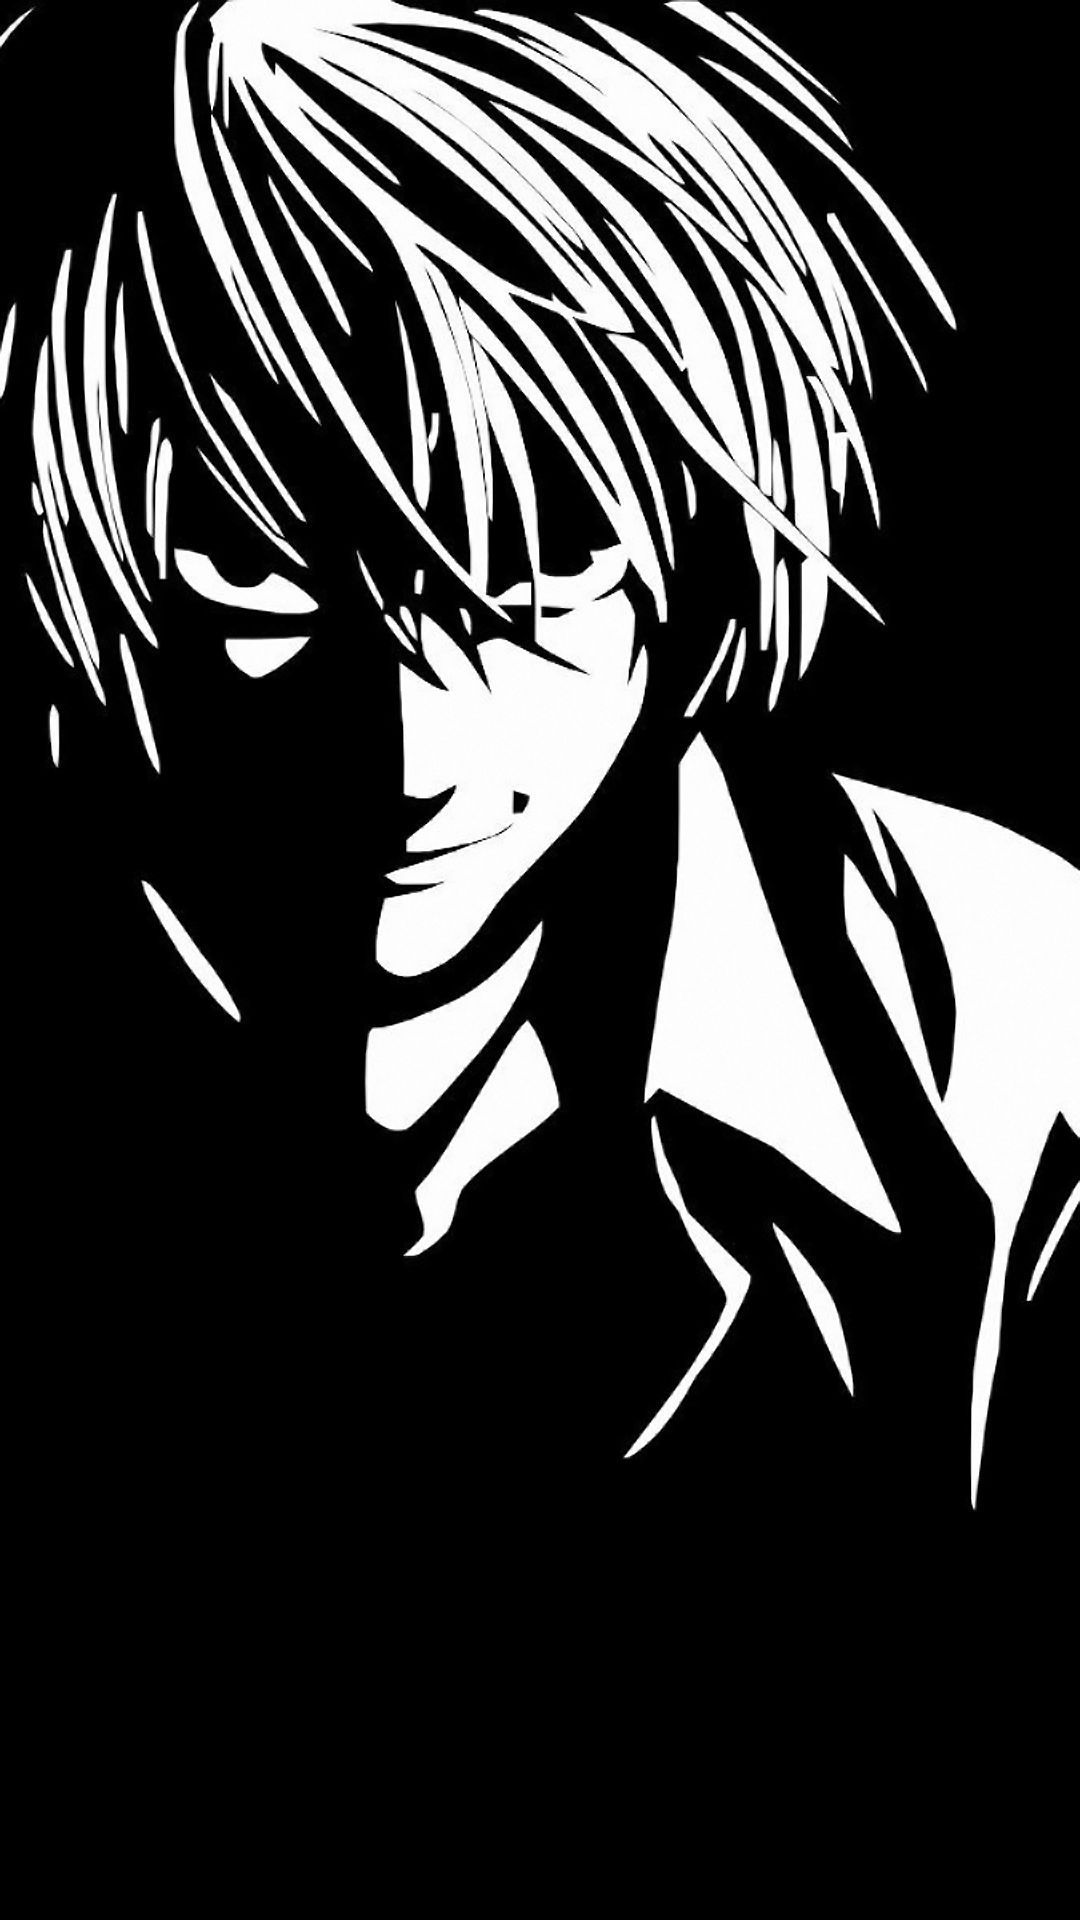 Kira Death Note Phone Wallpapers Top Free Kira Death Note